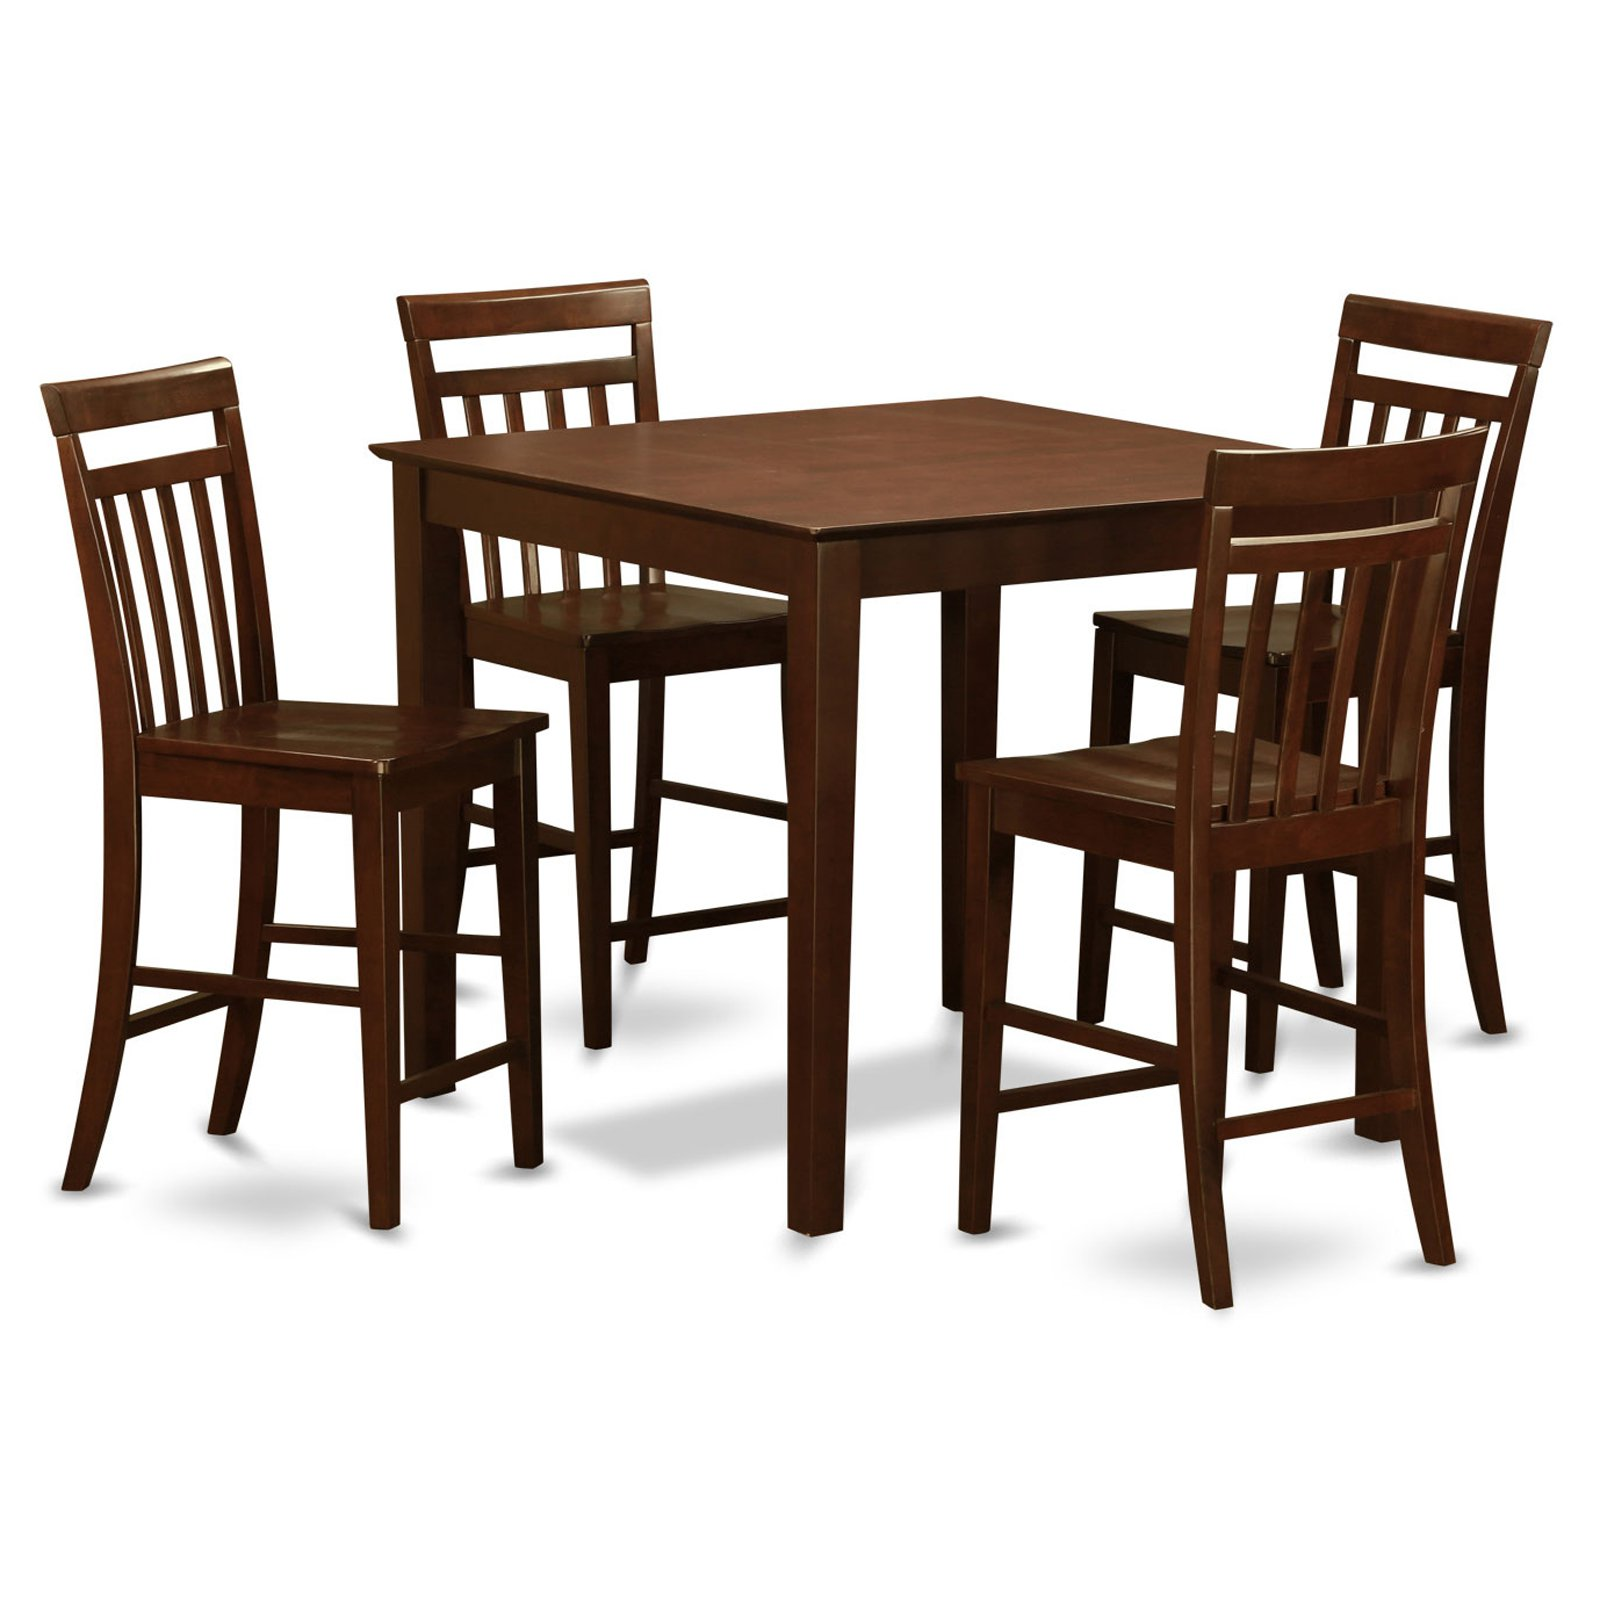 East West Furniture East West 5 Piece Thin Slat Back Dining Table Set